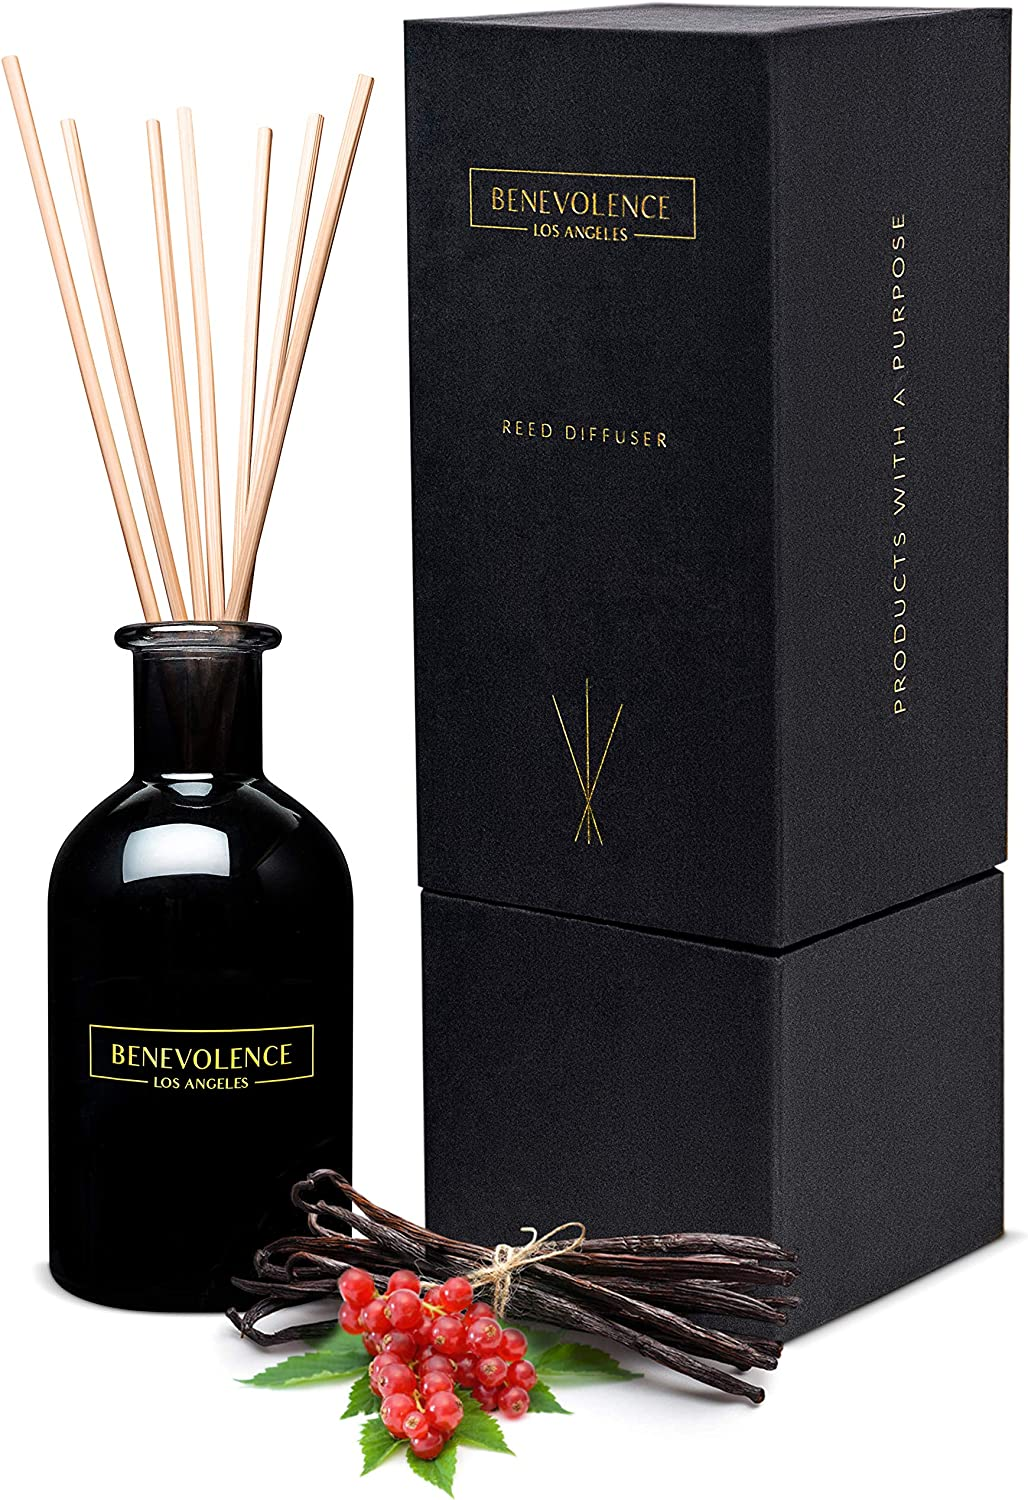 Benevolence LA Reed Diffusers for Home | Redcurrant & Vanilla Fragrance Diffuser | Aromatherapy Scented Oil Reed Diffuser Set | Sticks Diffuser